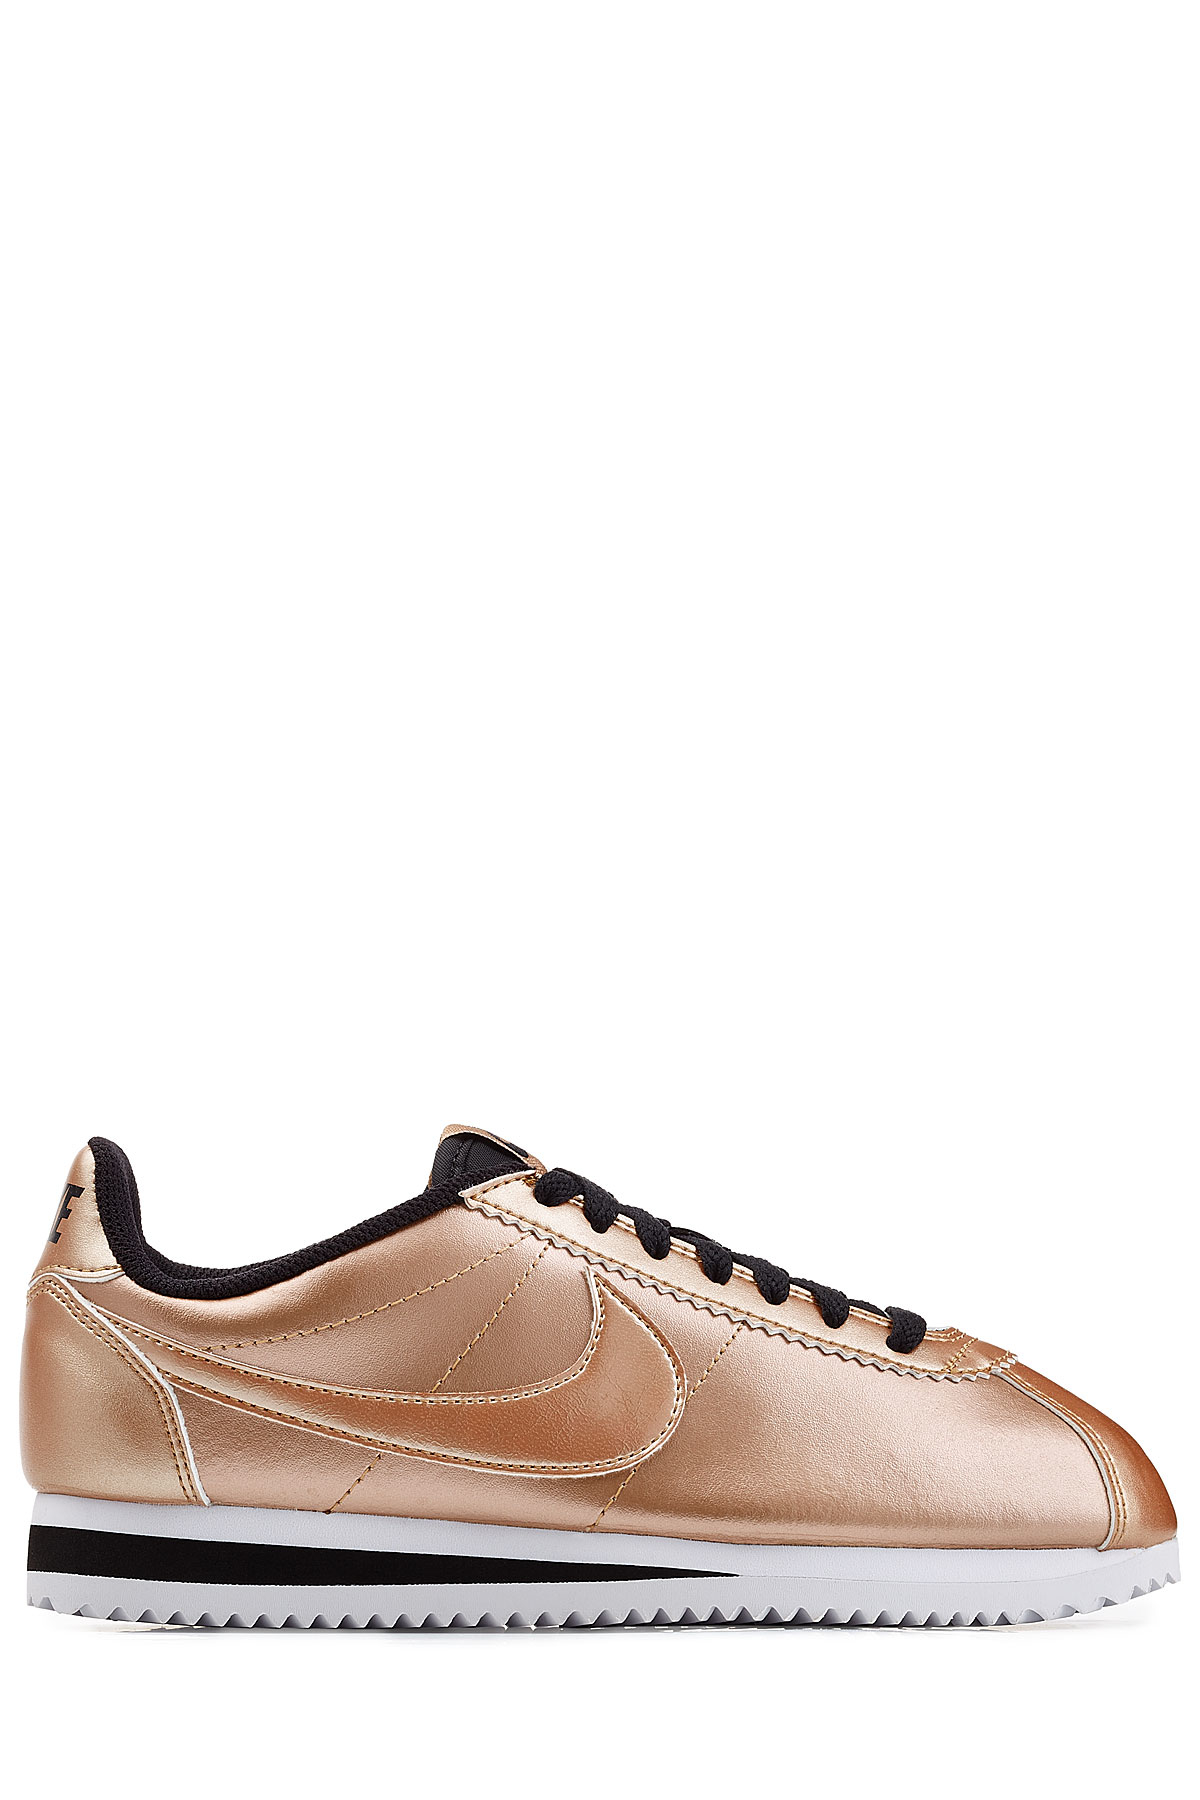 promo code af30a 19571 ... discount lyst nike classic cortez metallic leather sneakers rose in  pink 7db99 39a56